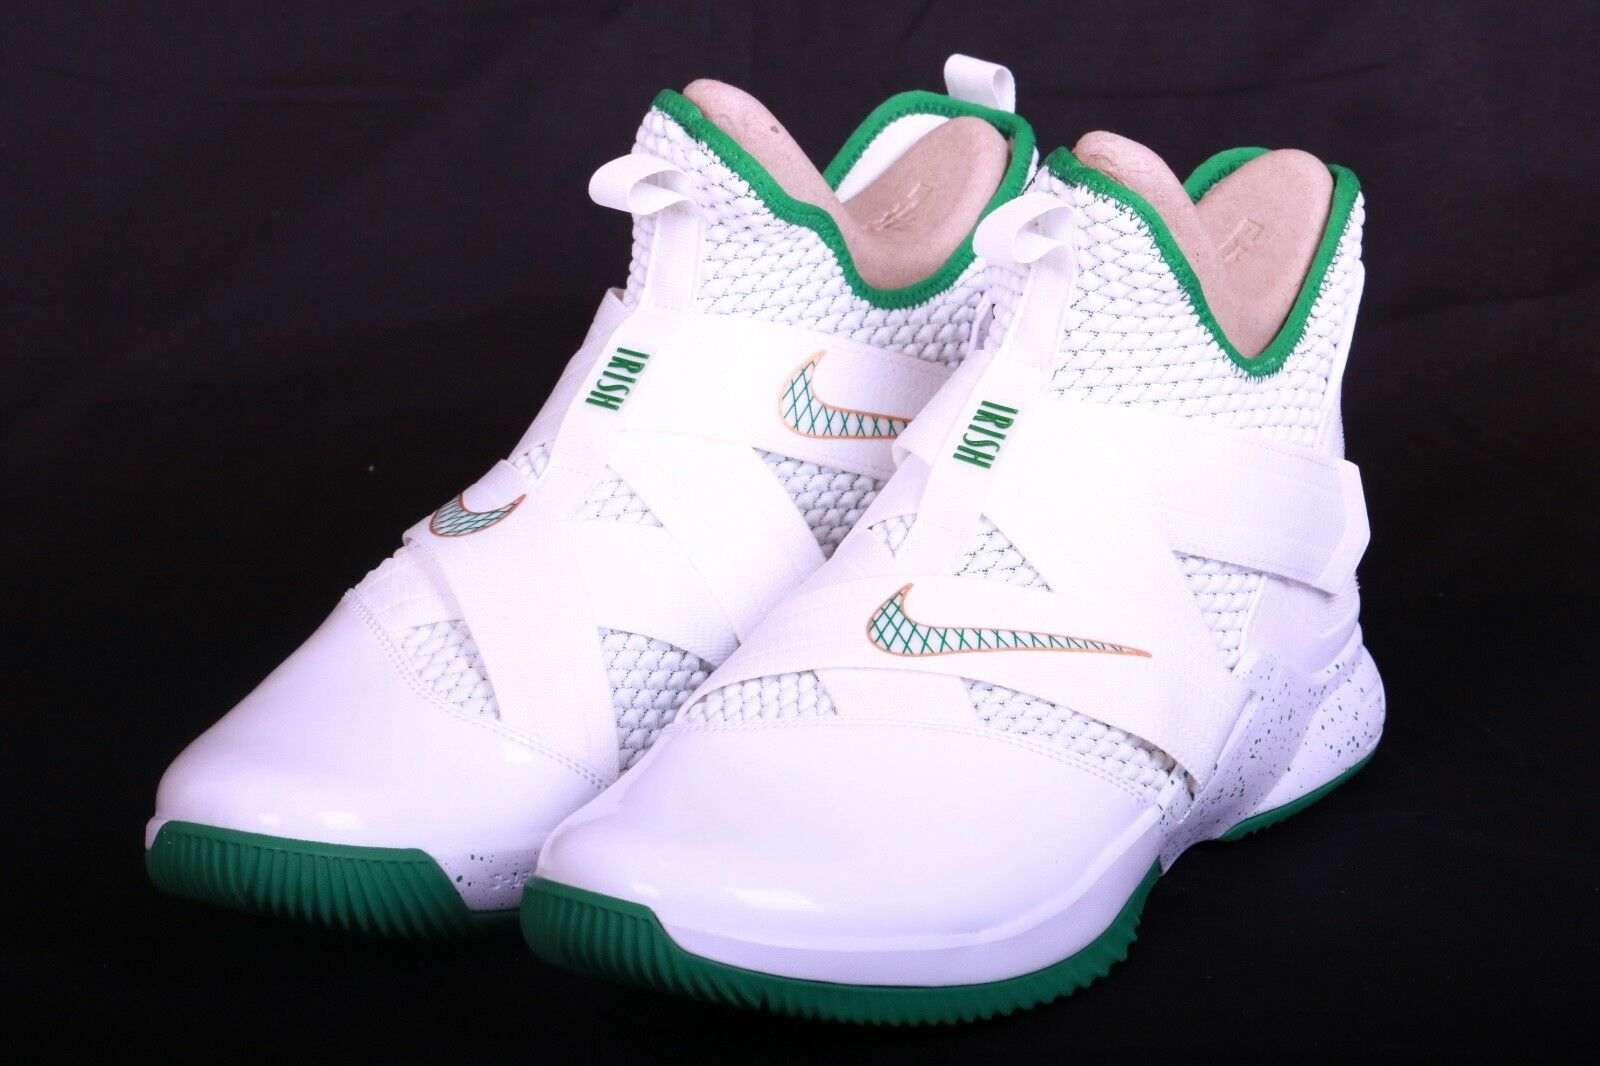 Nike Mens Lebron Soldier XII 12 SVSM Home White Green gold AO2609 100 Size 13